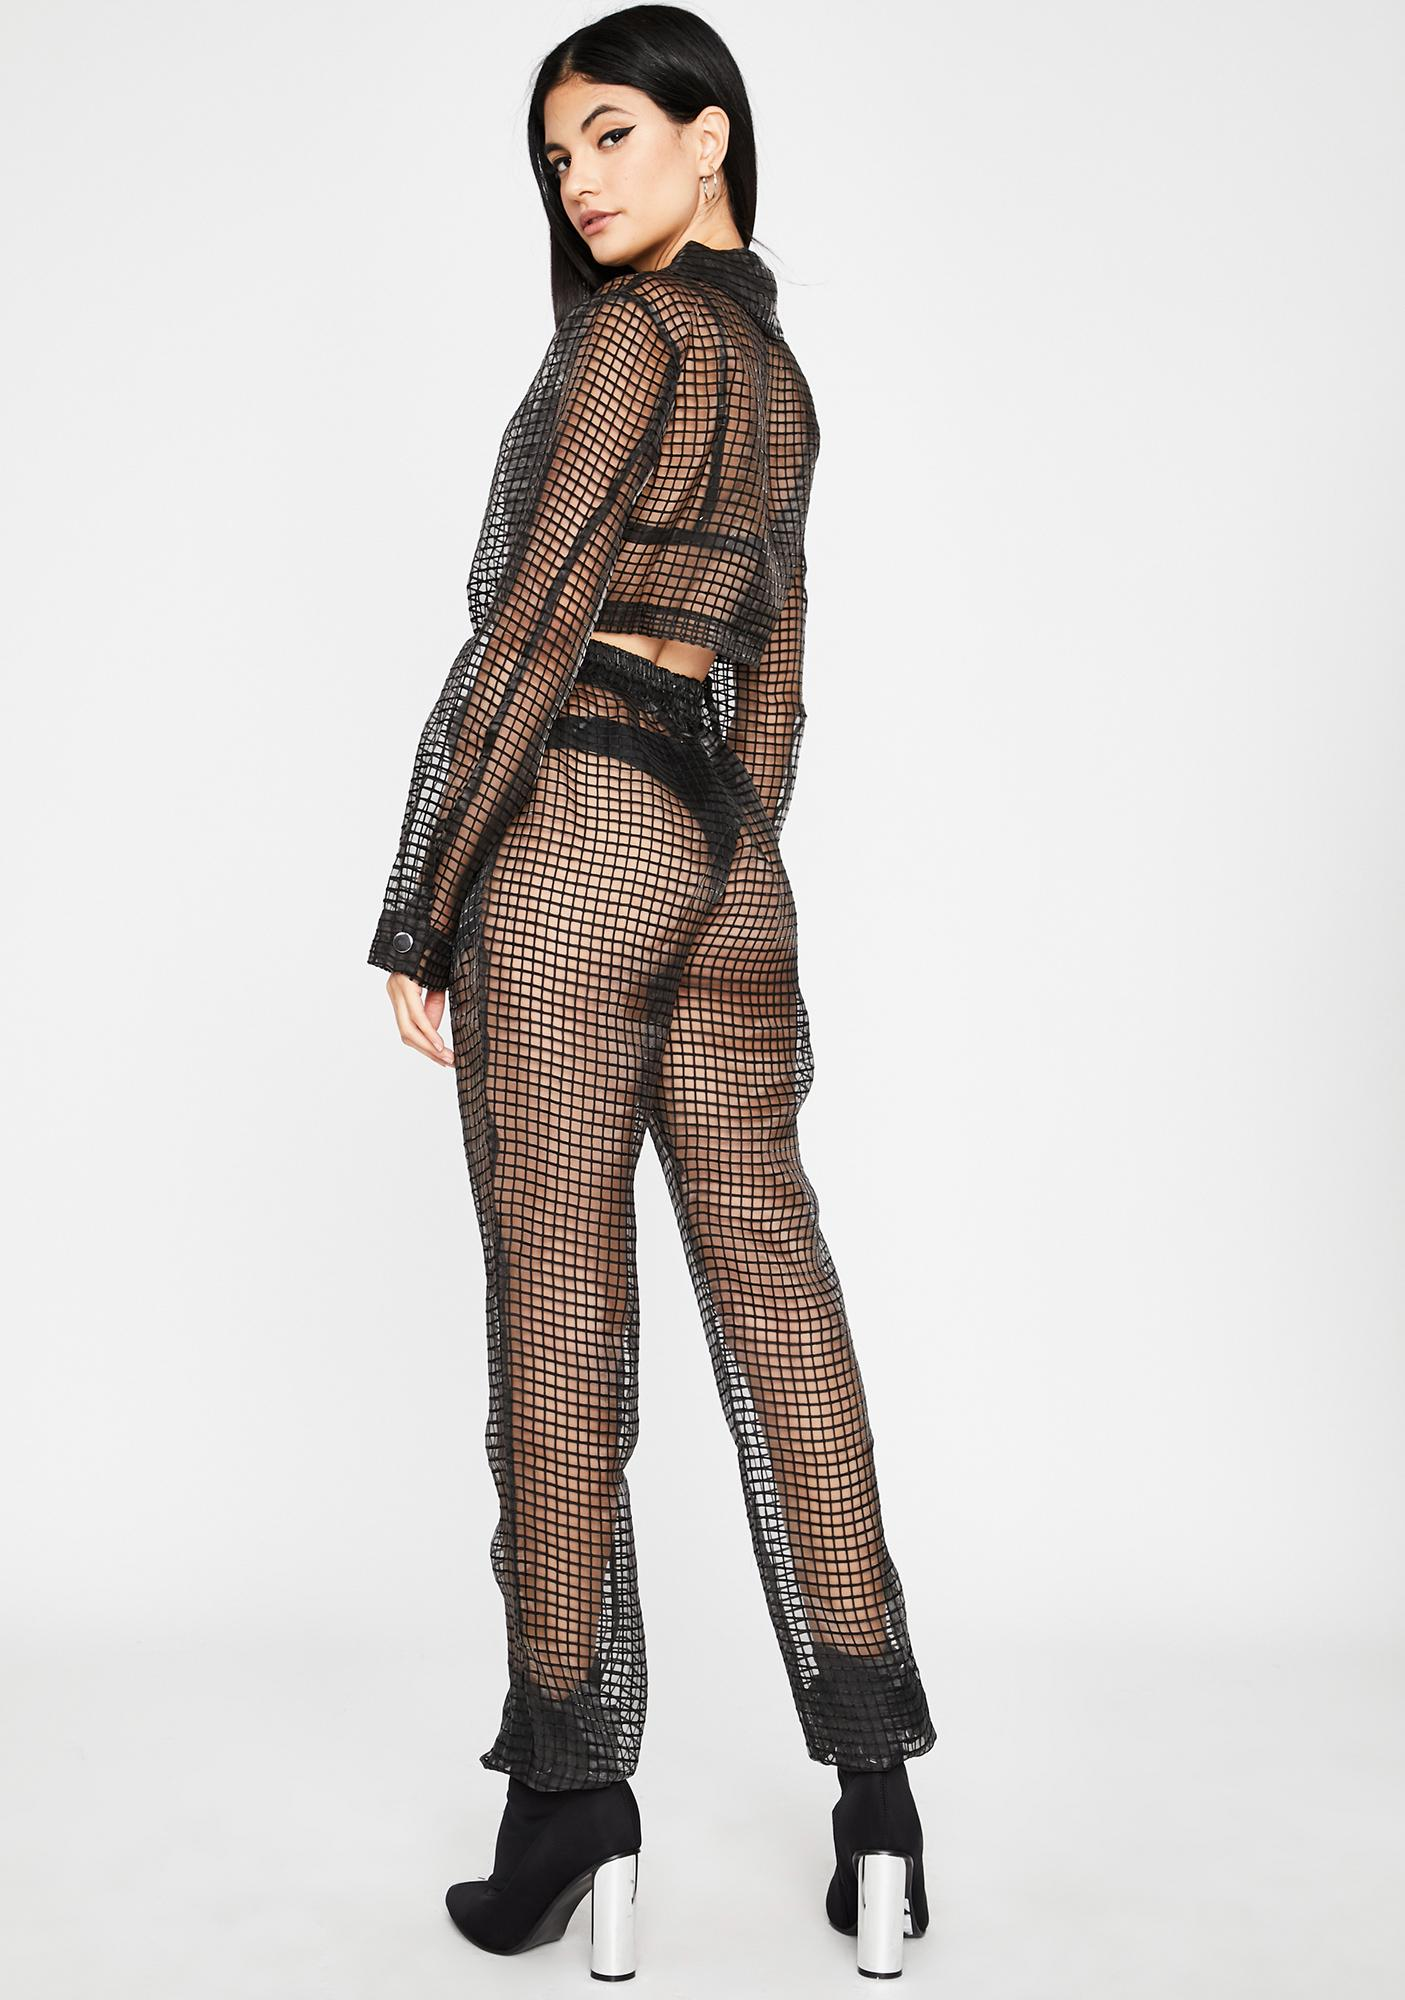 Dangerous Bish Sheer Pant Set